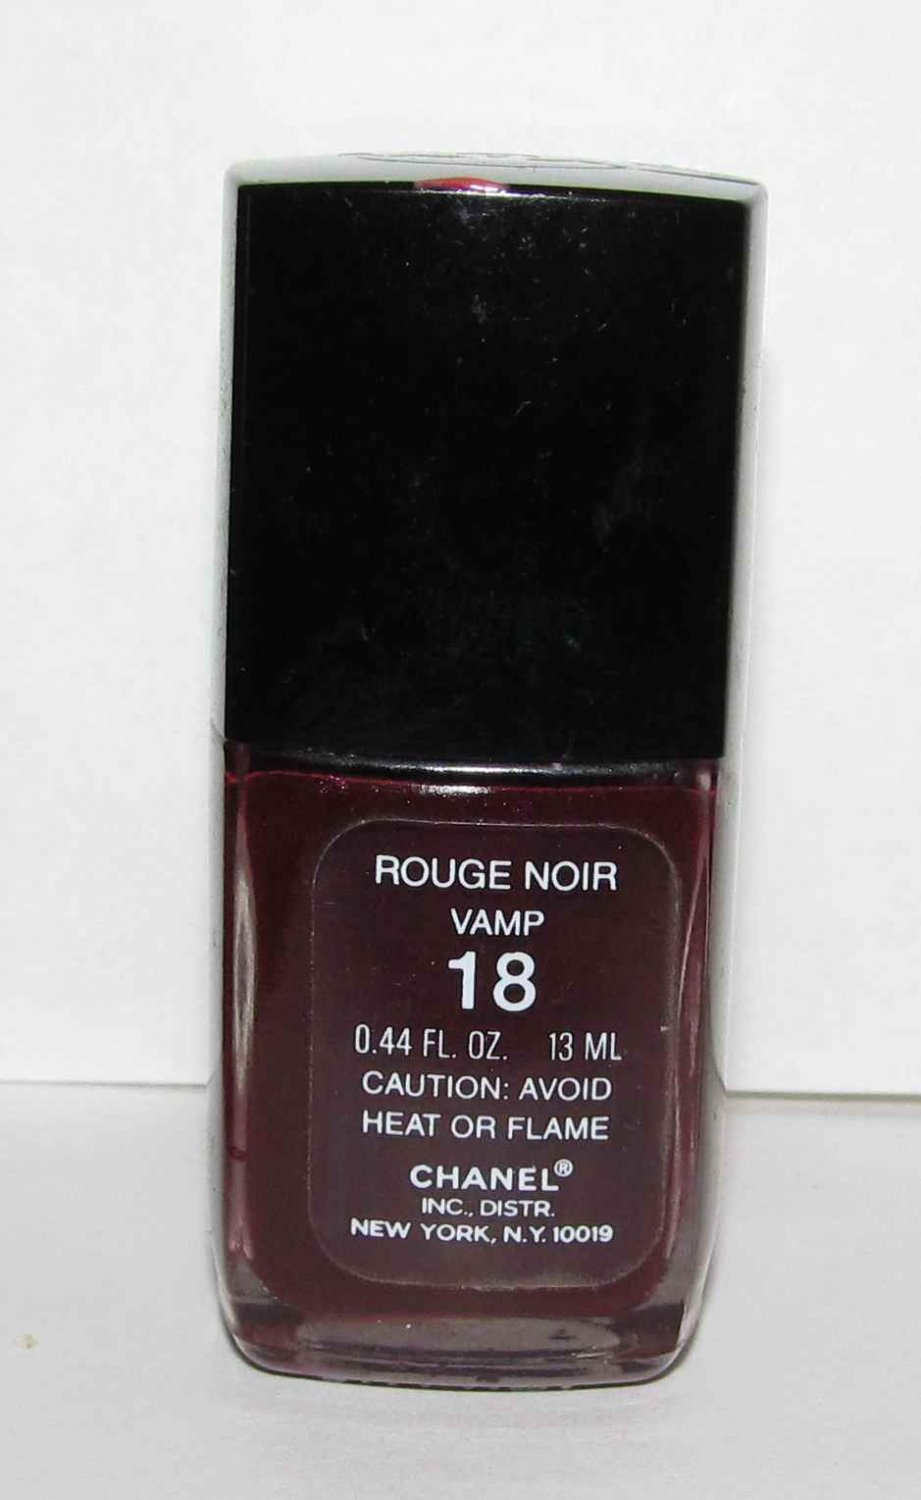 chanel rouge noir vamp 18 nail polish nwob. Black Bedroom Furniture Sets. Home Design Ideas